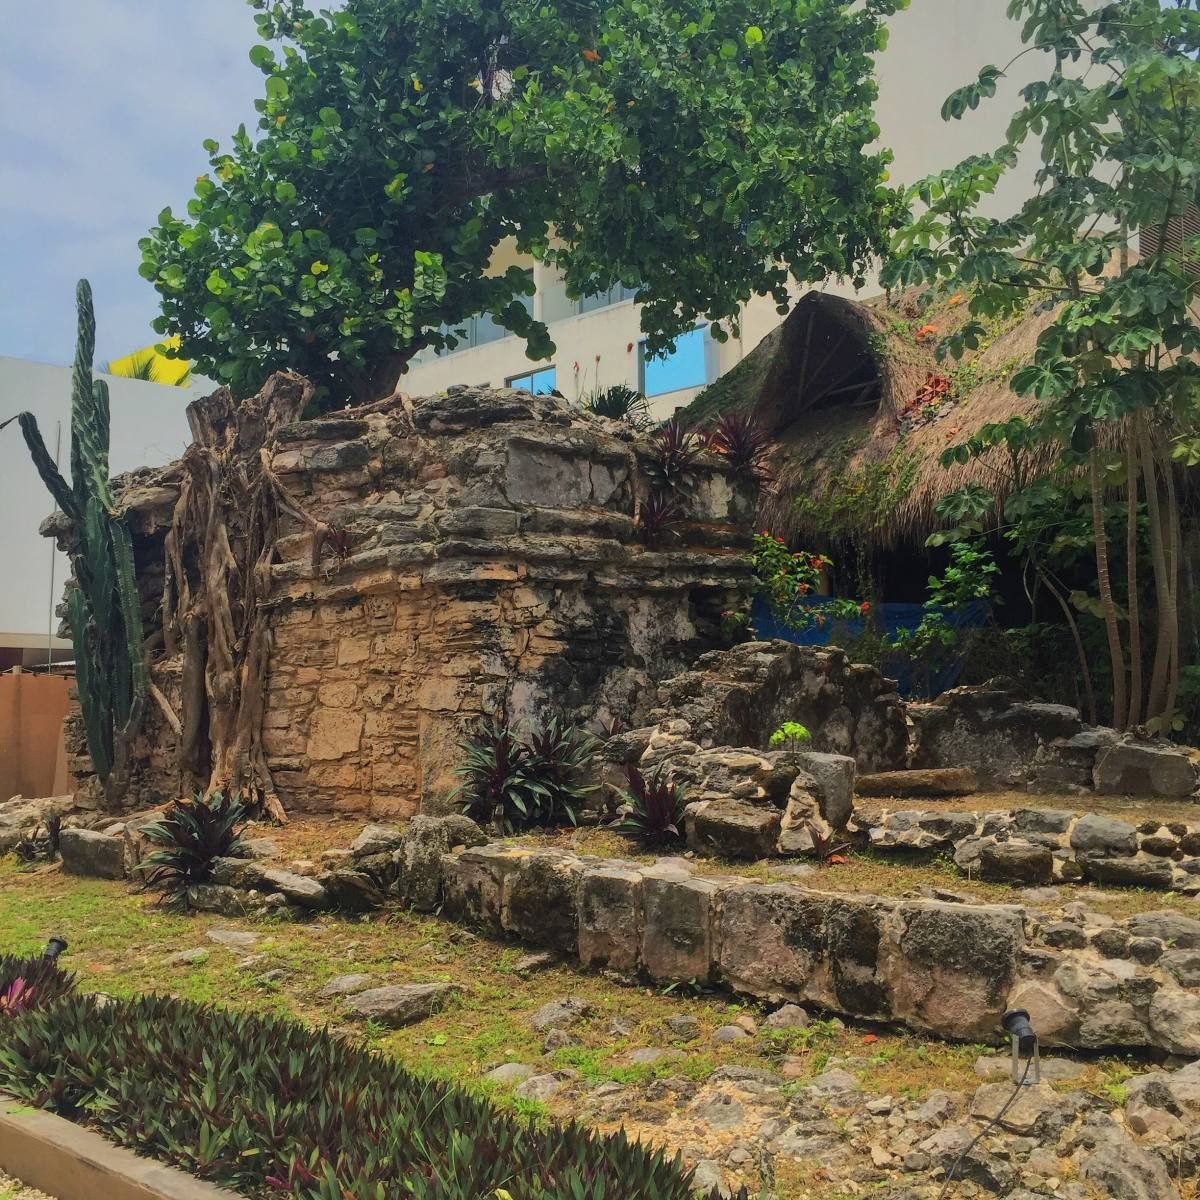 Best Places In Mexico To See Ruins